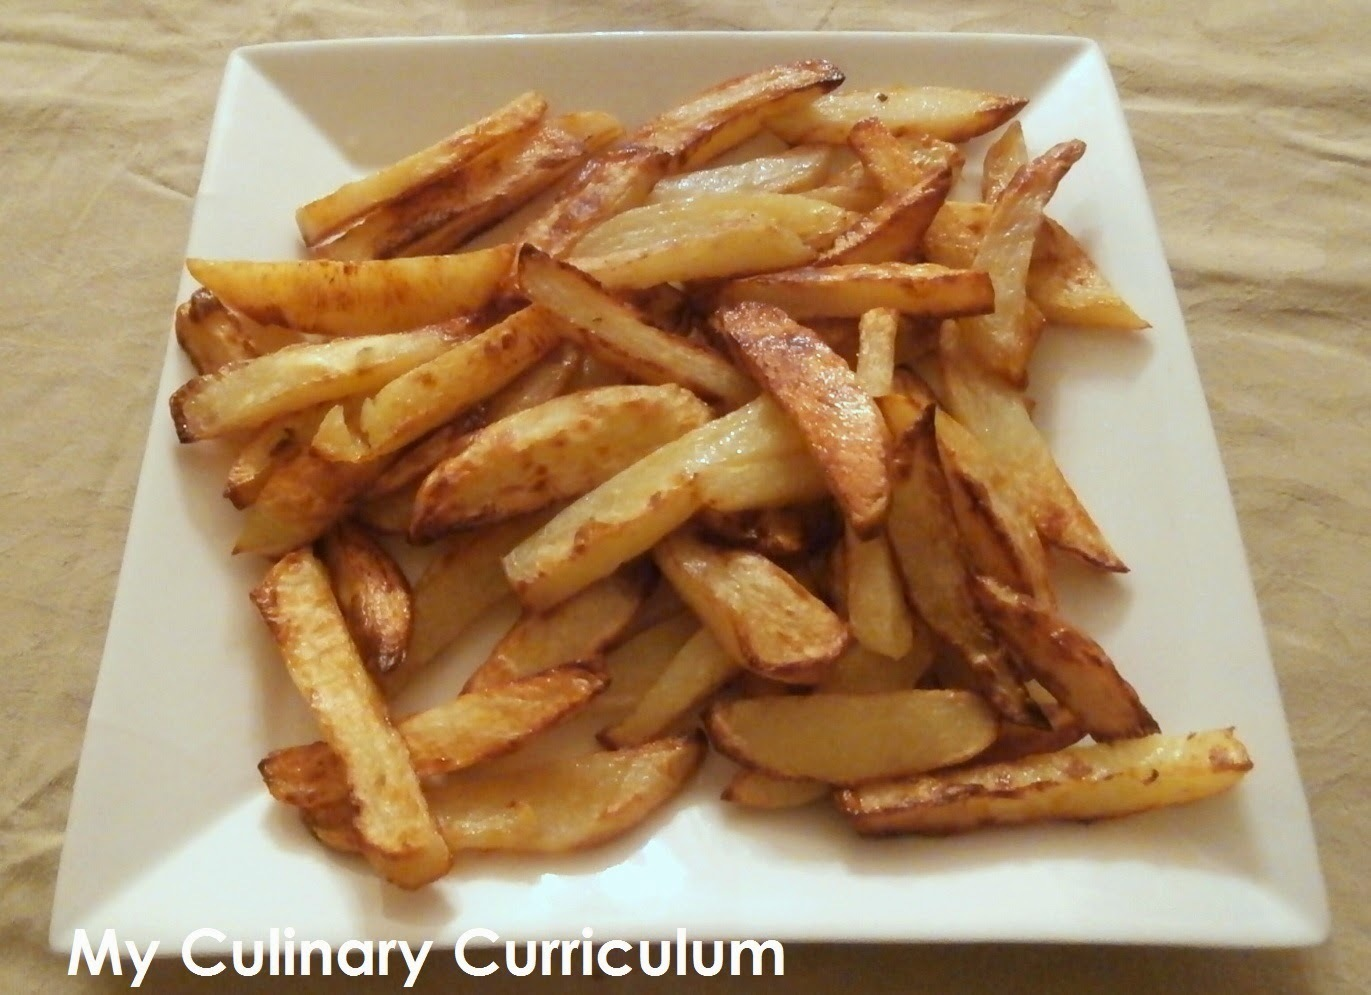 Frites au four maison (Homemade chips)